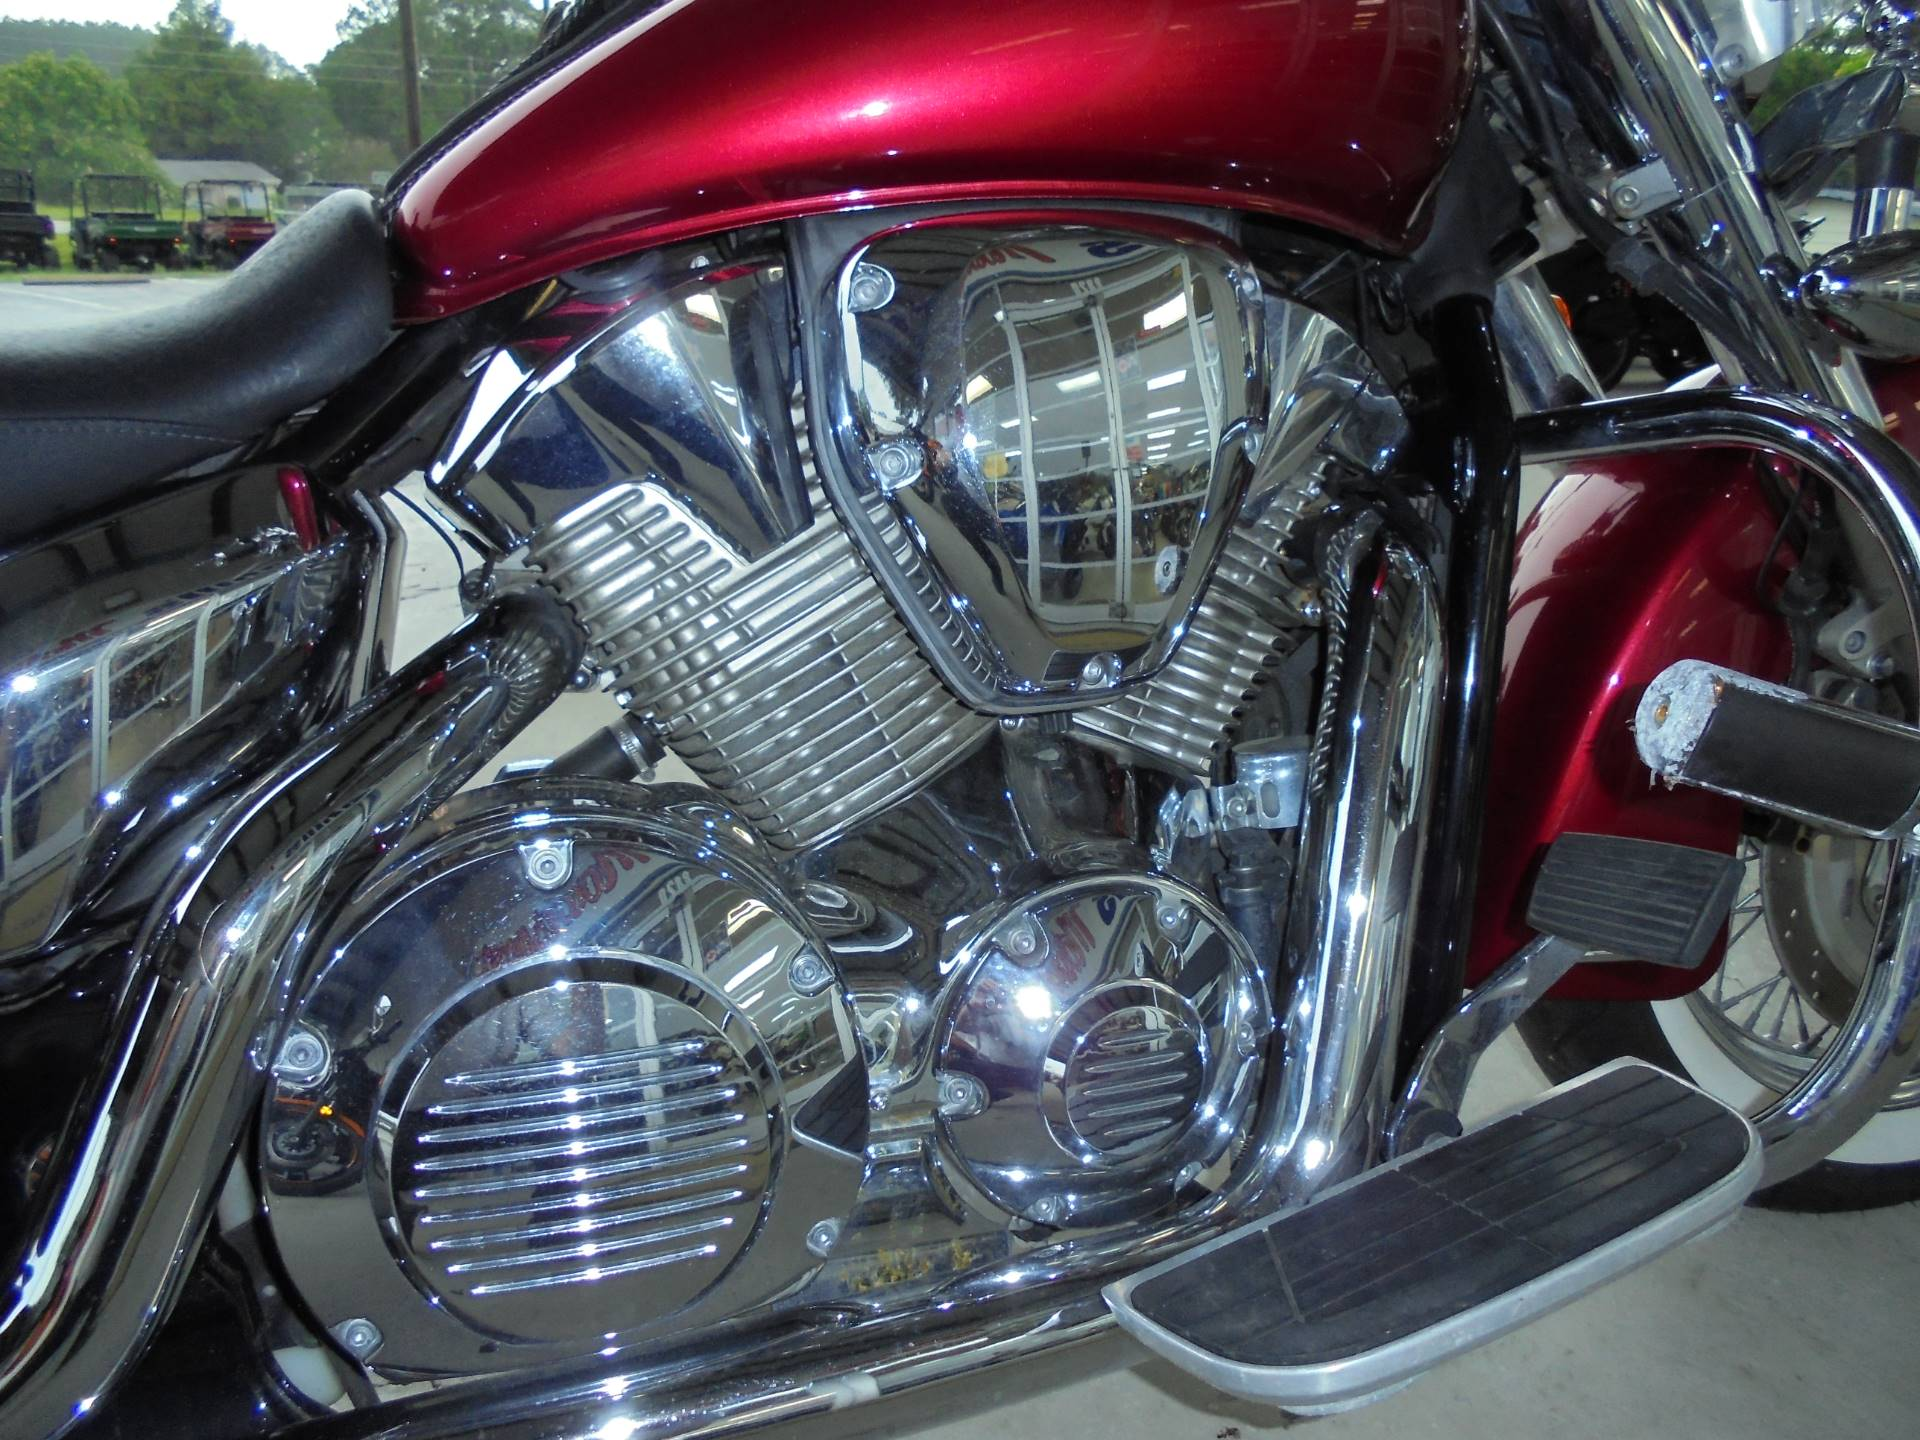 2004 Honda VTX1300 RETRO in Zephyrhills, Florida - Photo 4